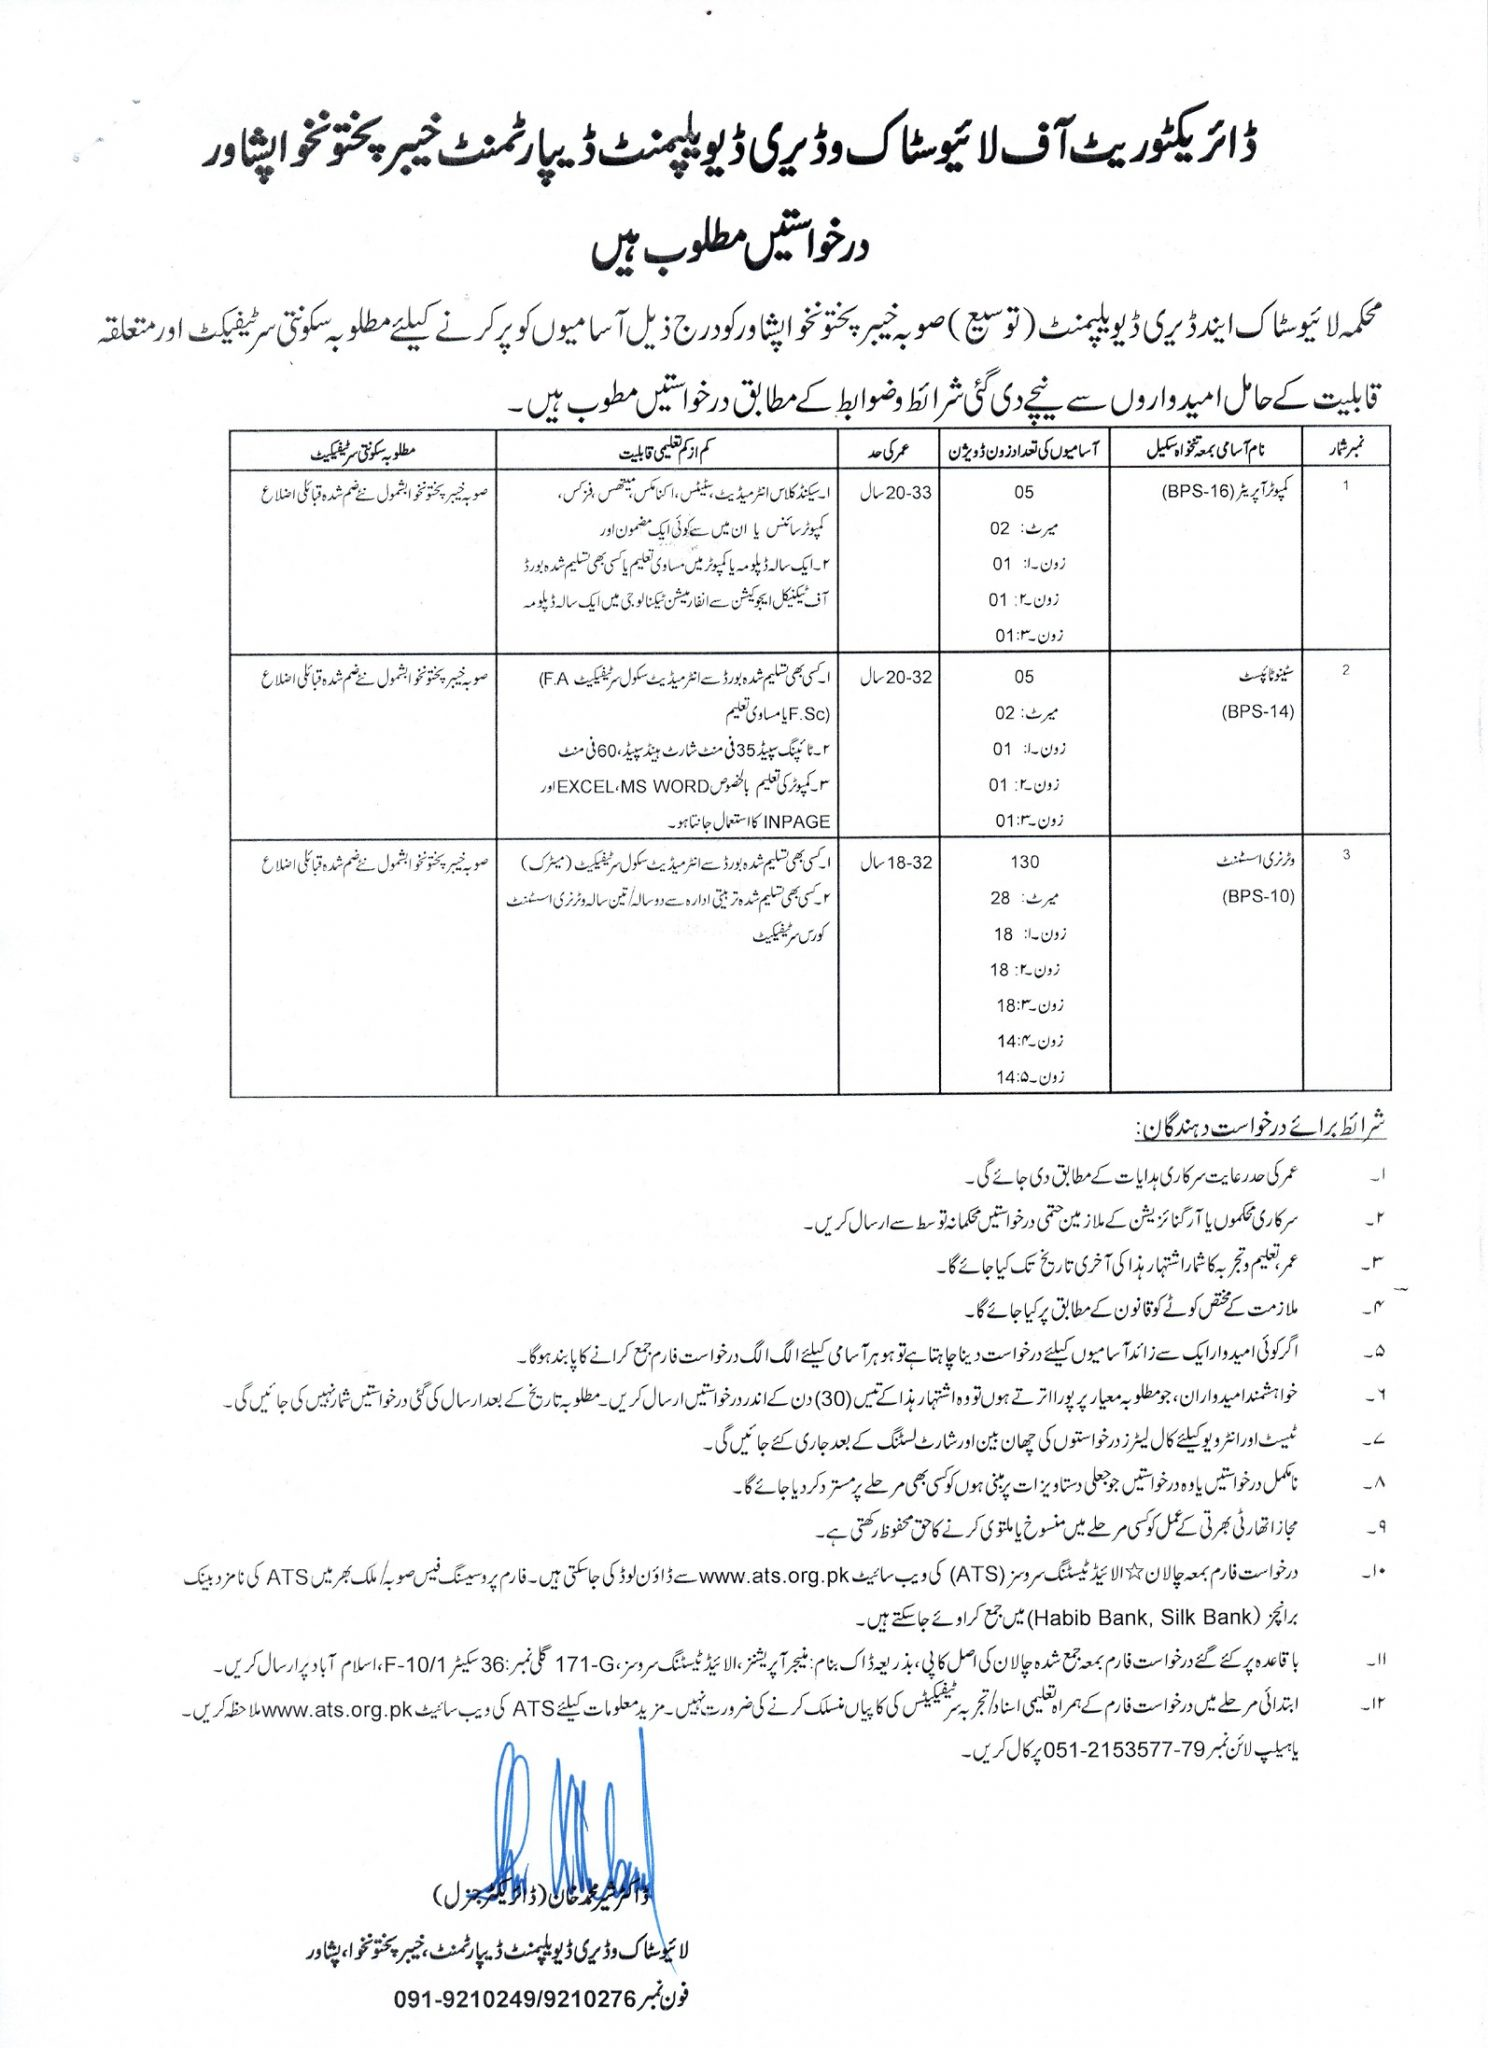 Livestock Department KPK Peshawar Jobs